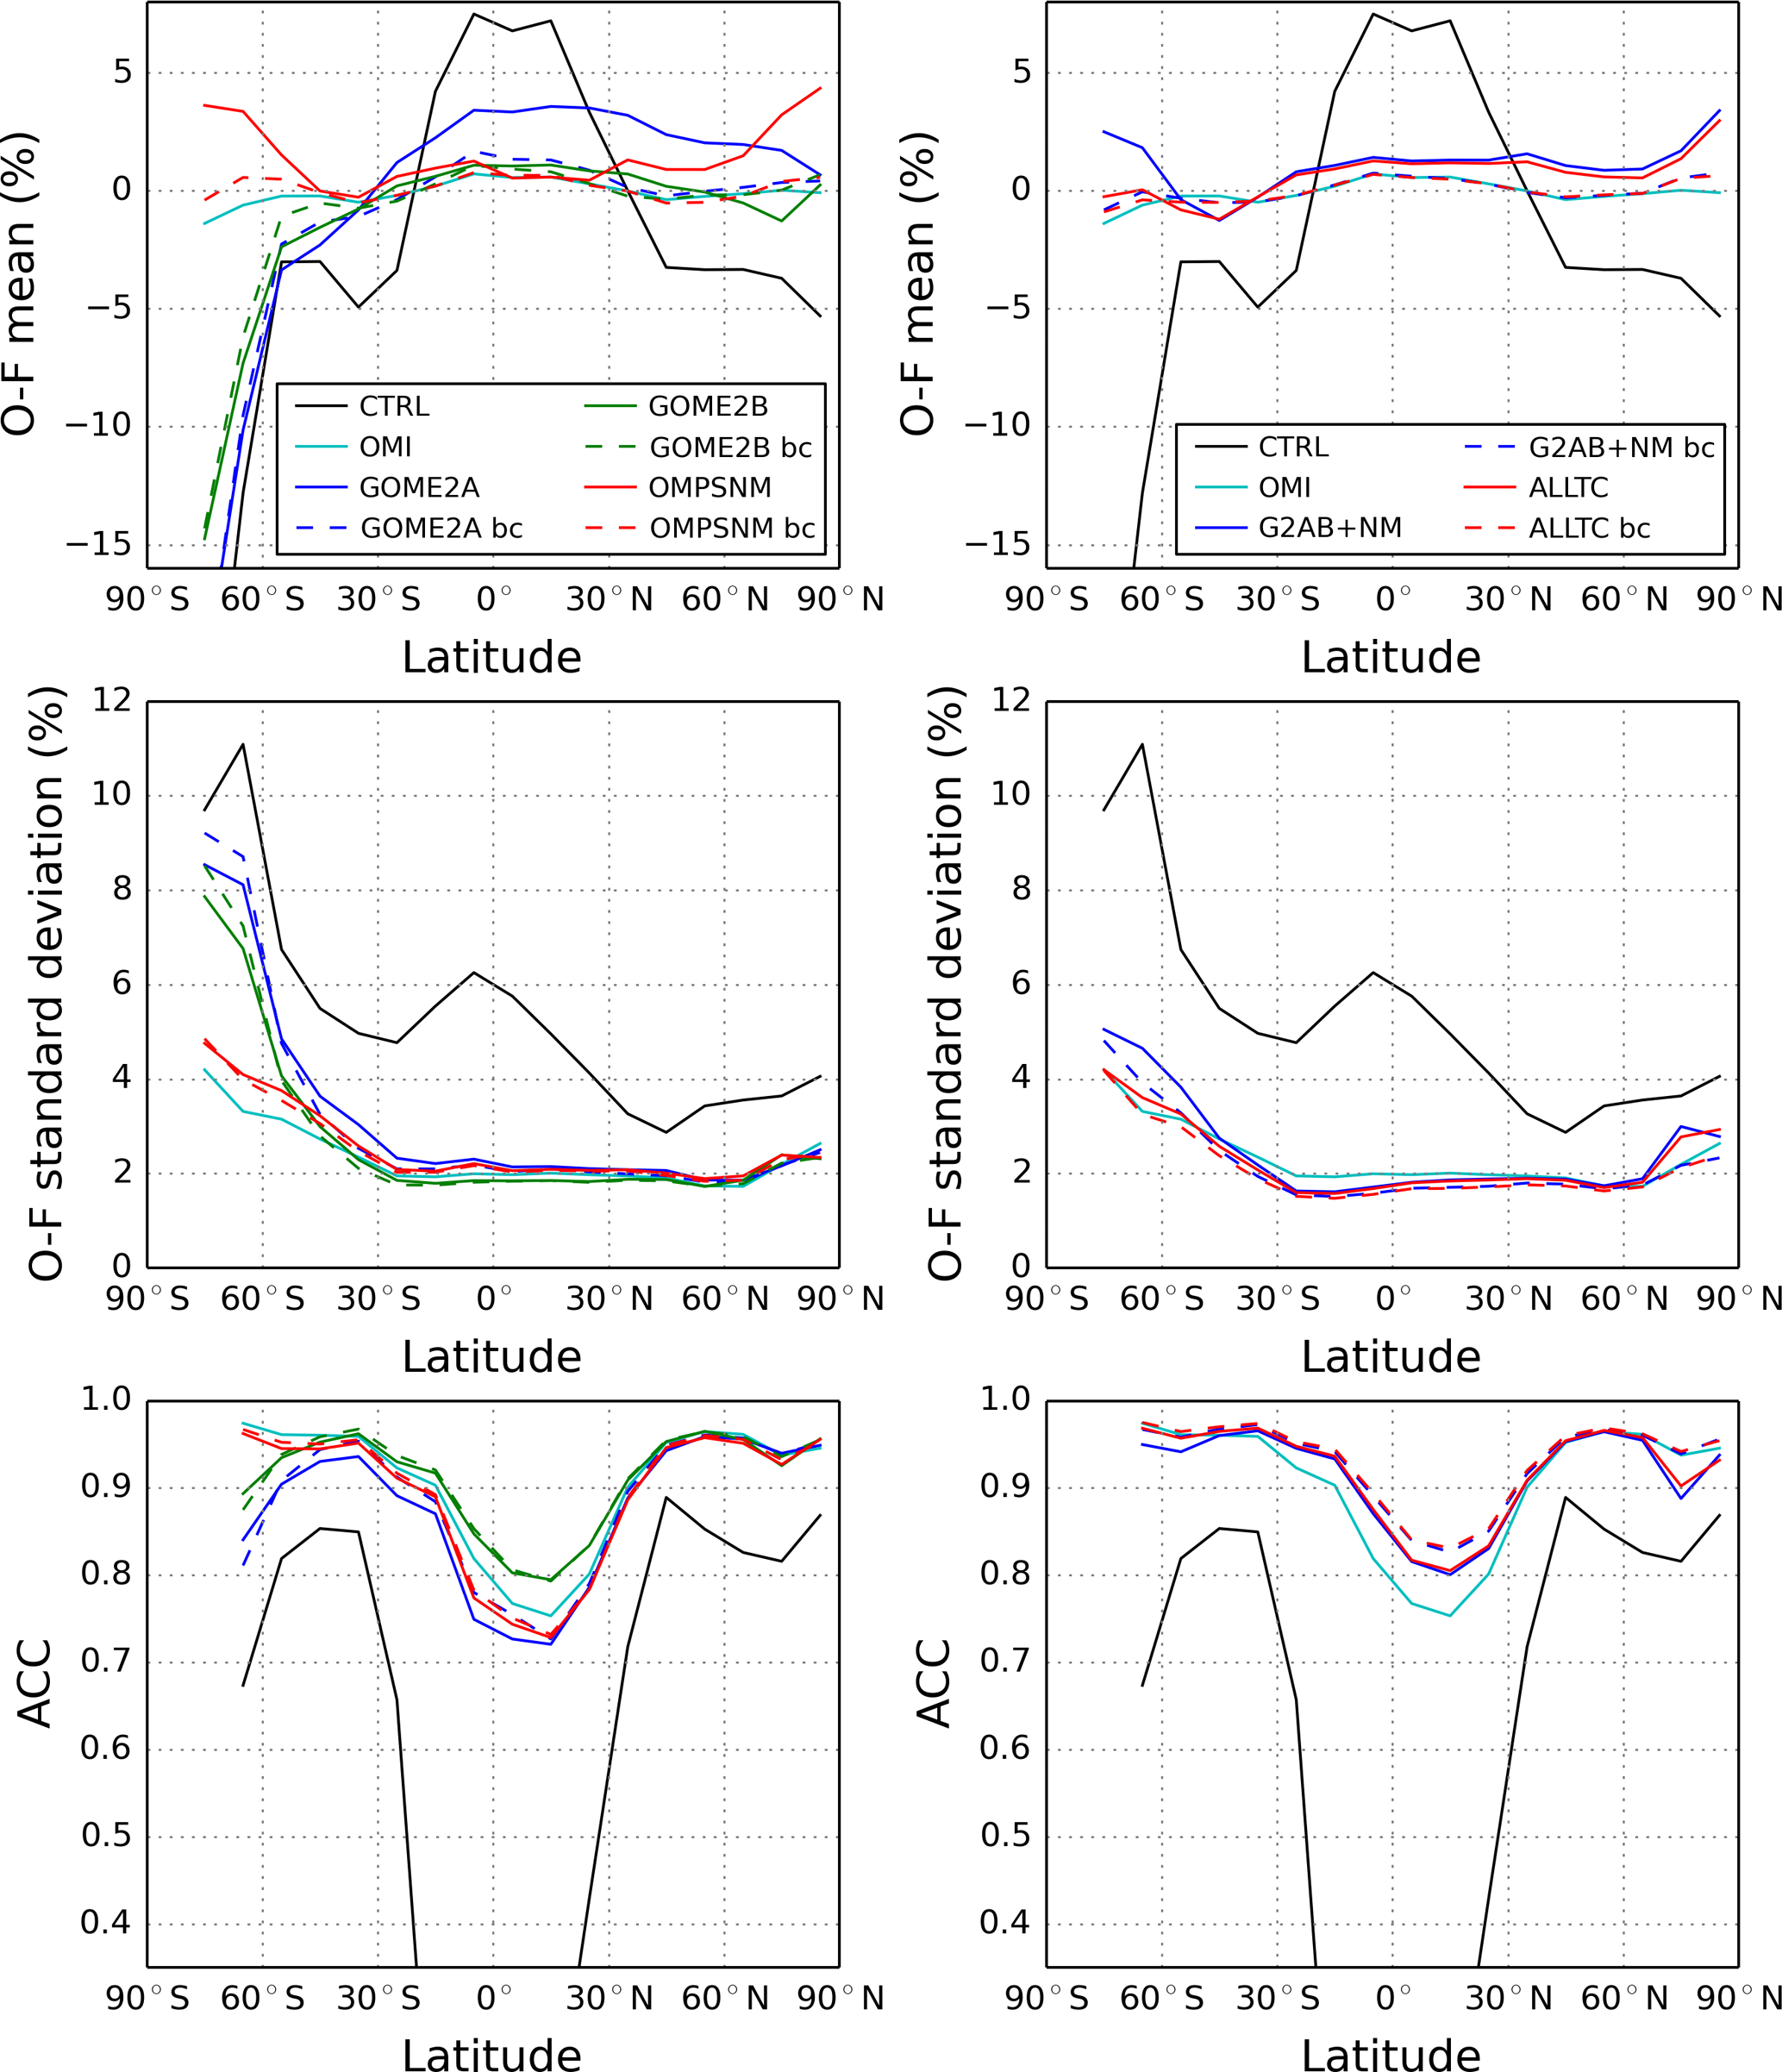 ACP - A study on harmonizing total ozone assimilation with